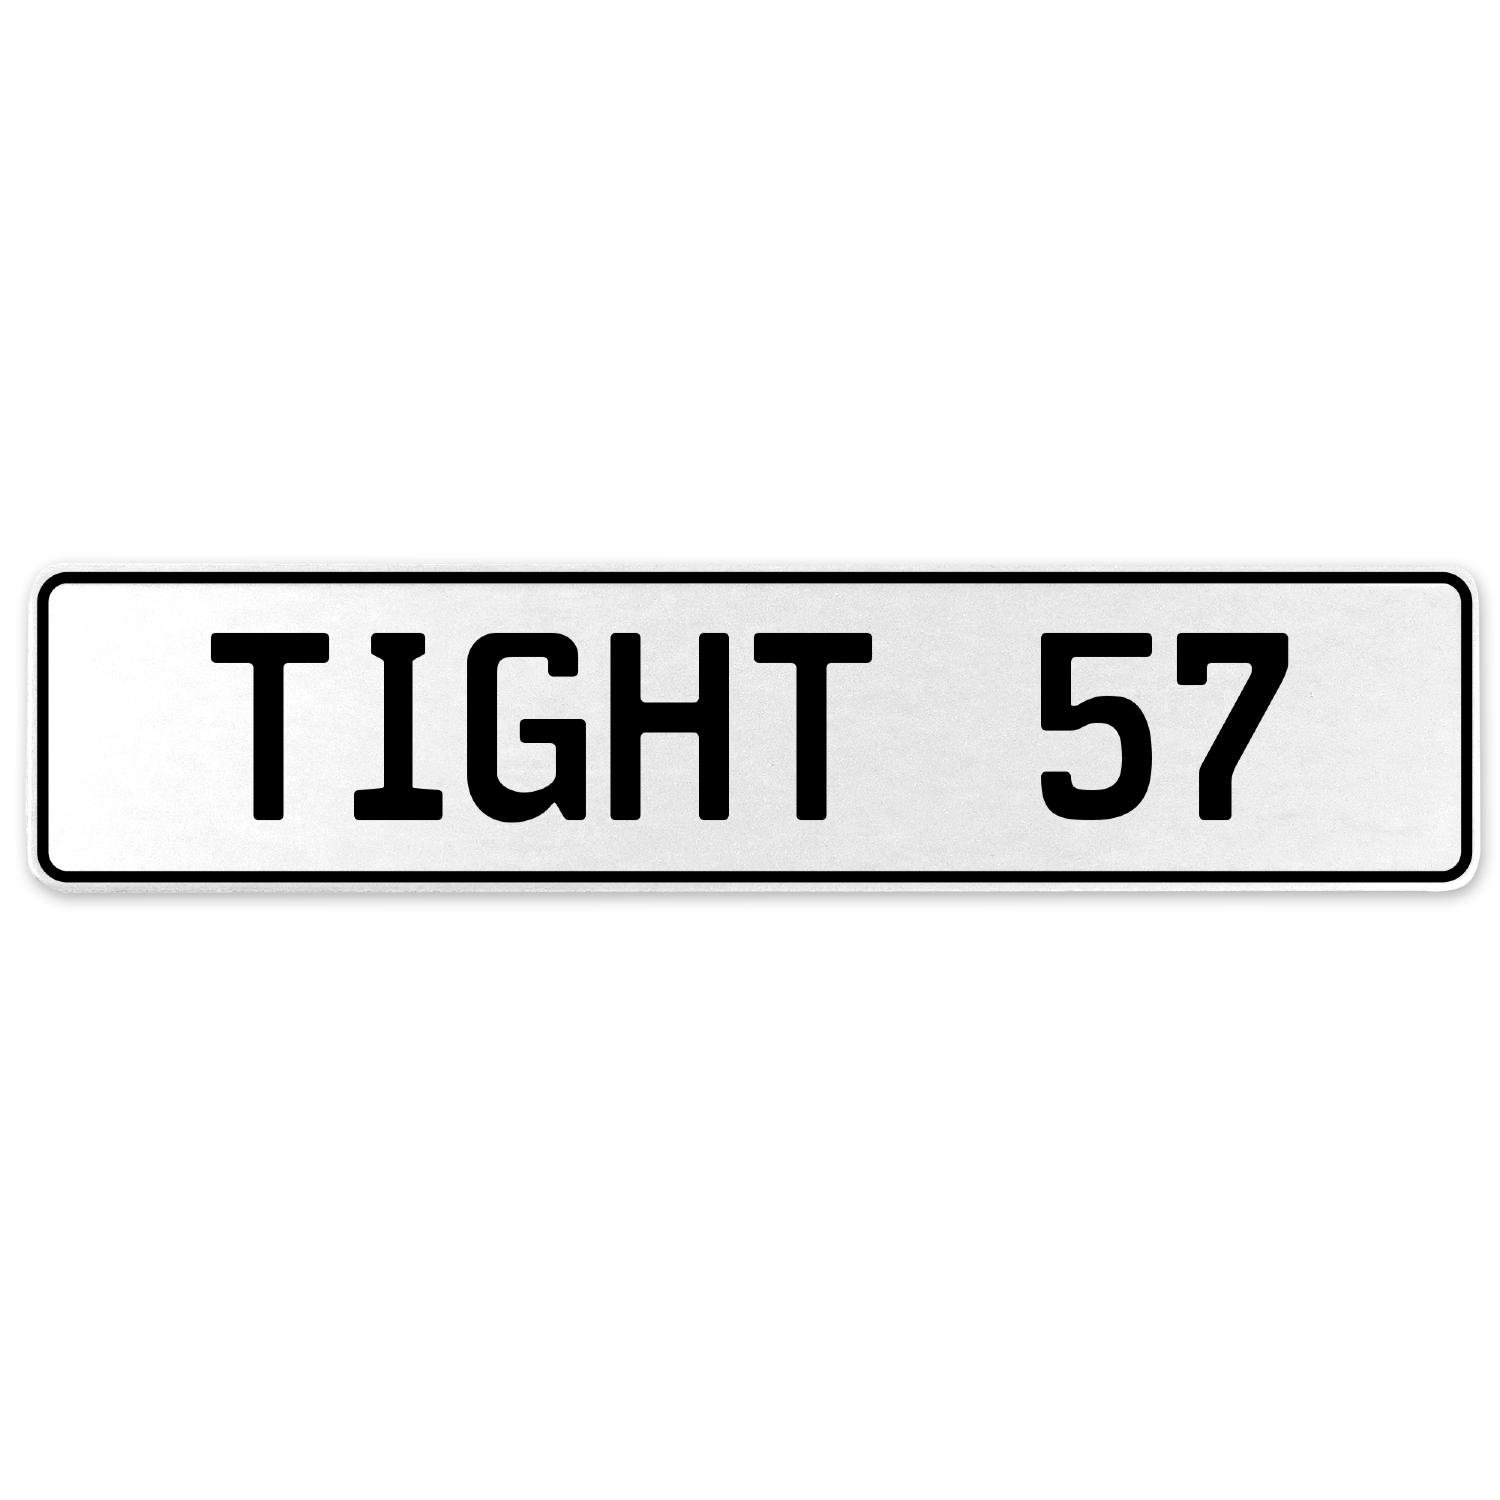 Vintage Parts 554753 Tight 57 White Stamped Aluminum European License Plate